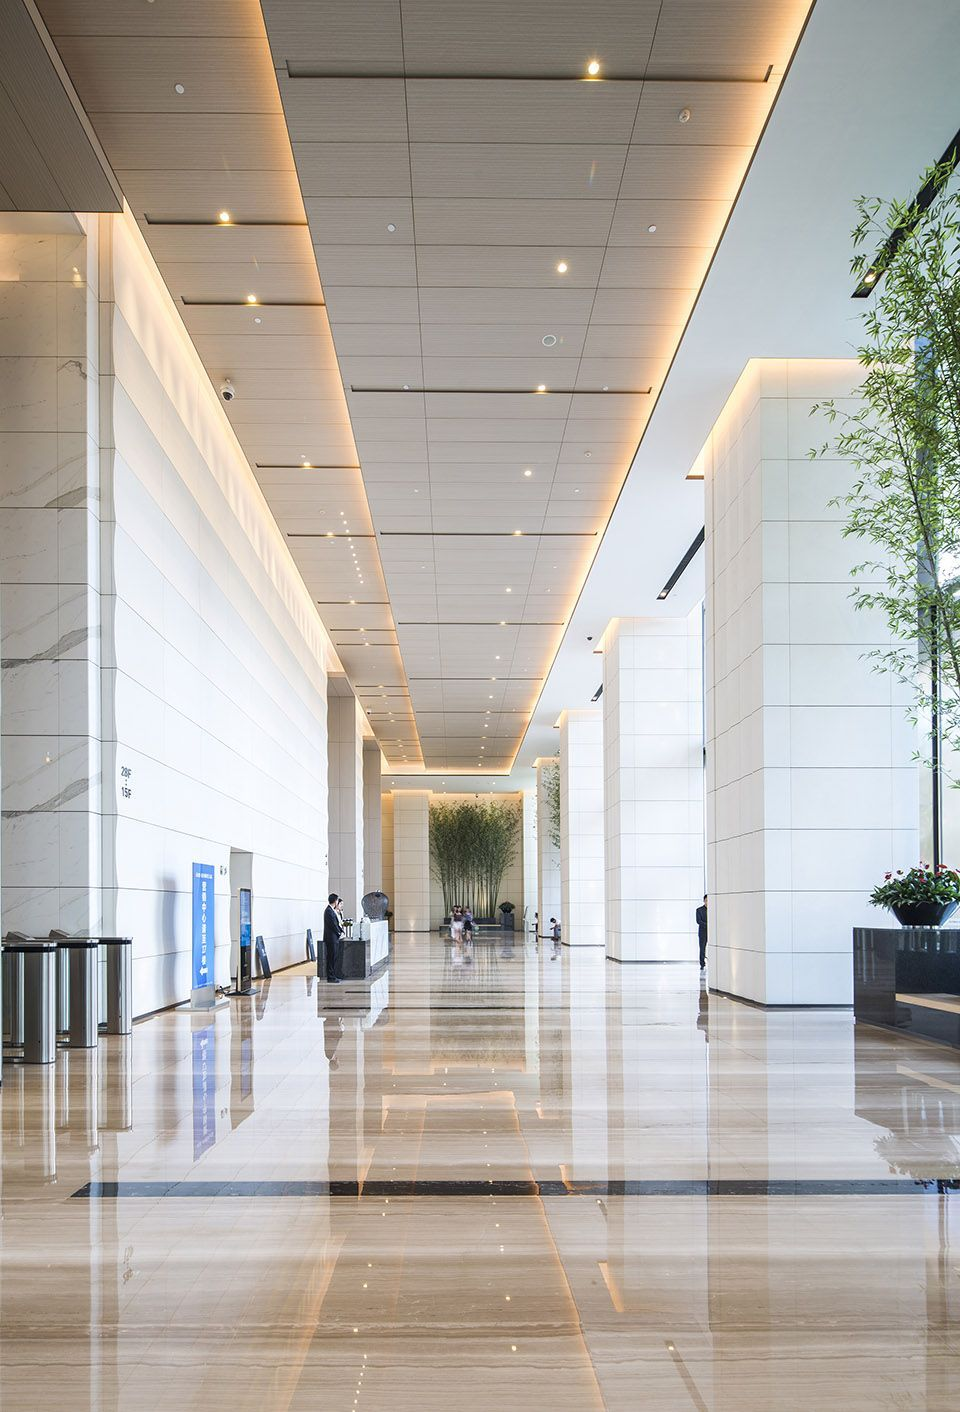 Office design envy awesome office spaces at 10 brands you - Office building interior design ideas ...